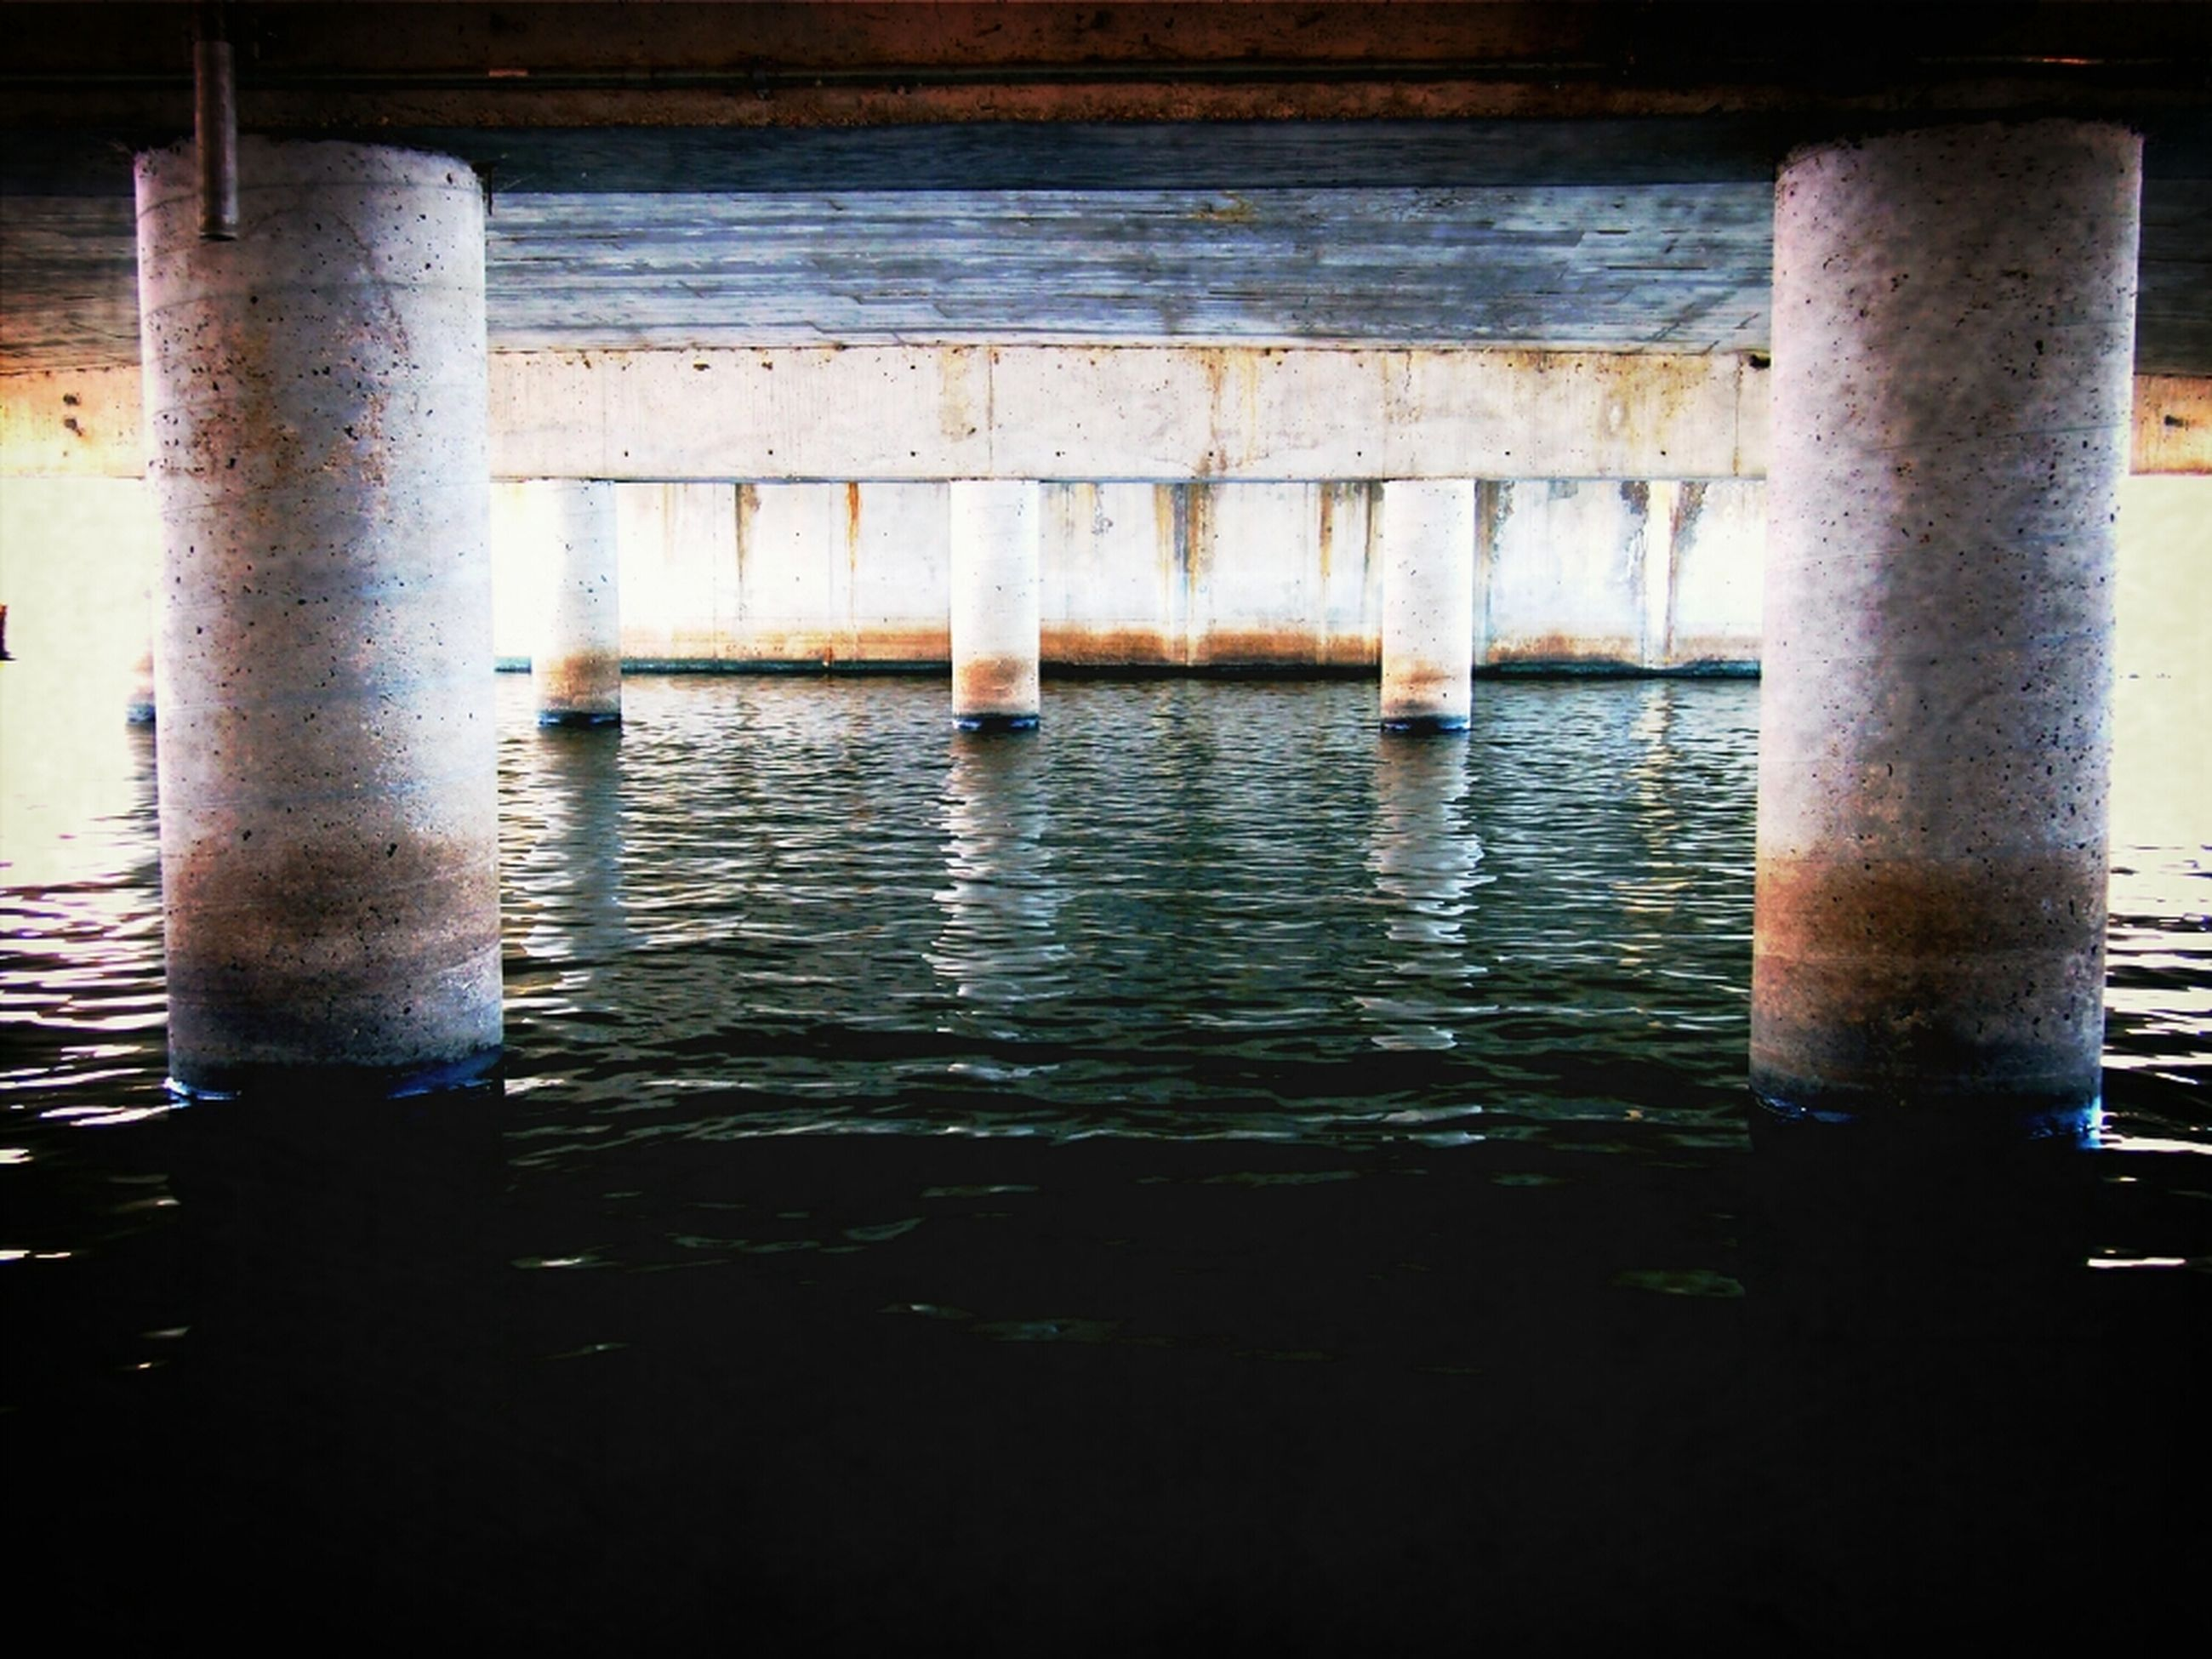 water, architecture, built structure, indoors, reflection, architectural column, waterfront, no people, column, river, day, pole, wood - material, sea, sunlight, support, window, rippled, building exterior